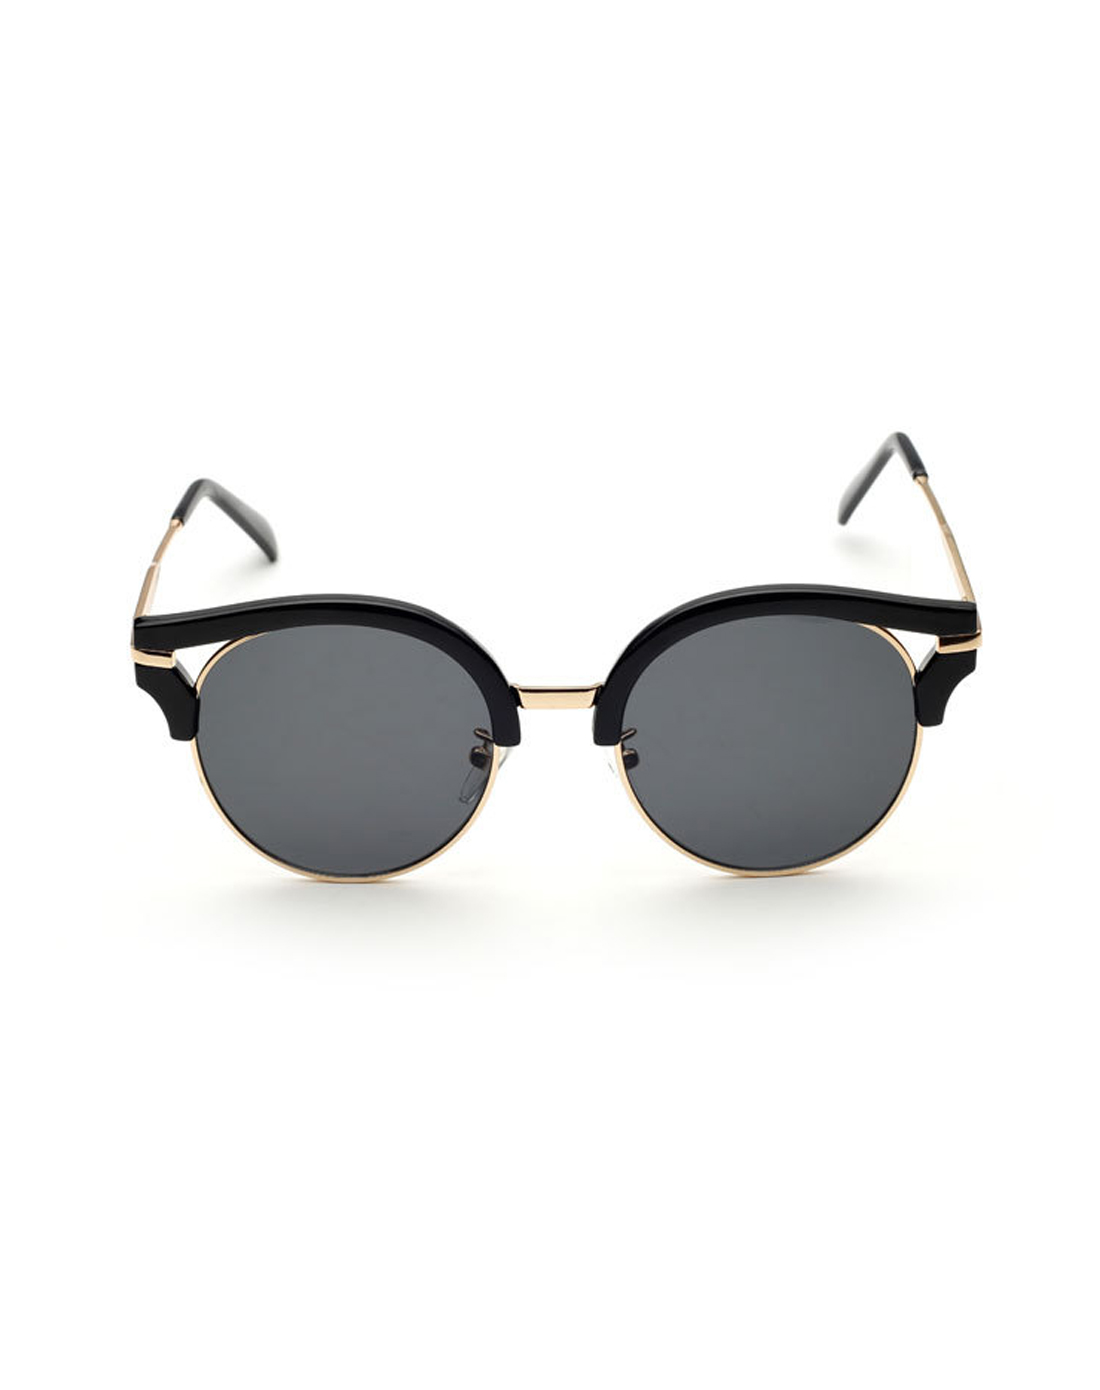 V metal leg sunglasses